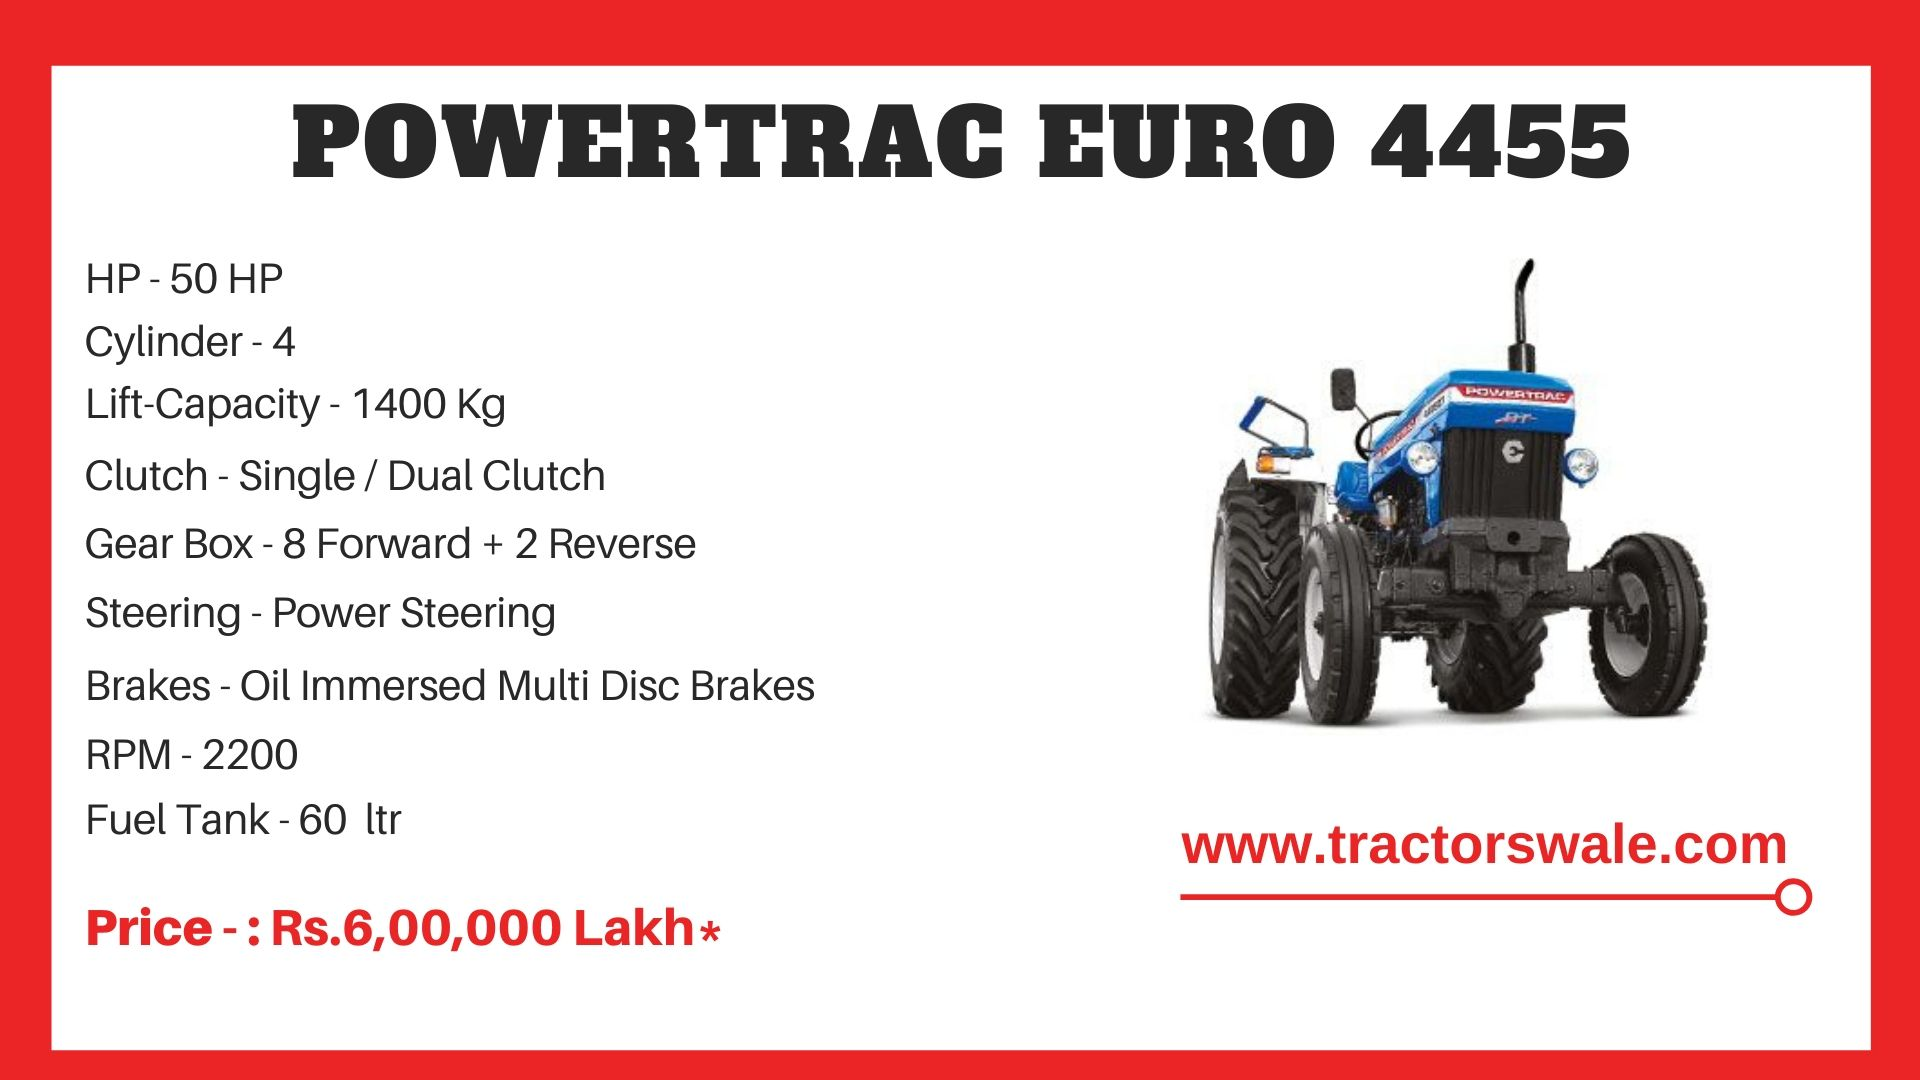 PowerTrac Euro 4455 tractor Price